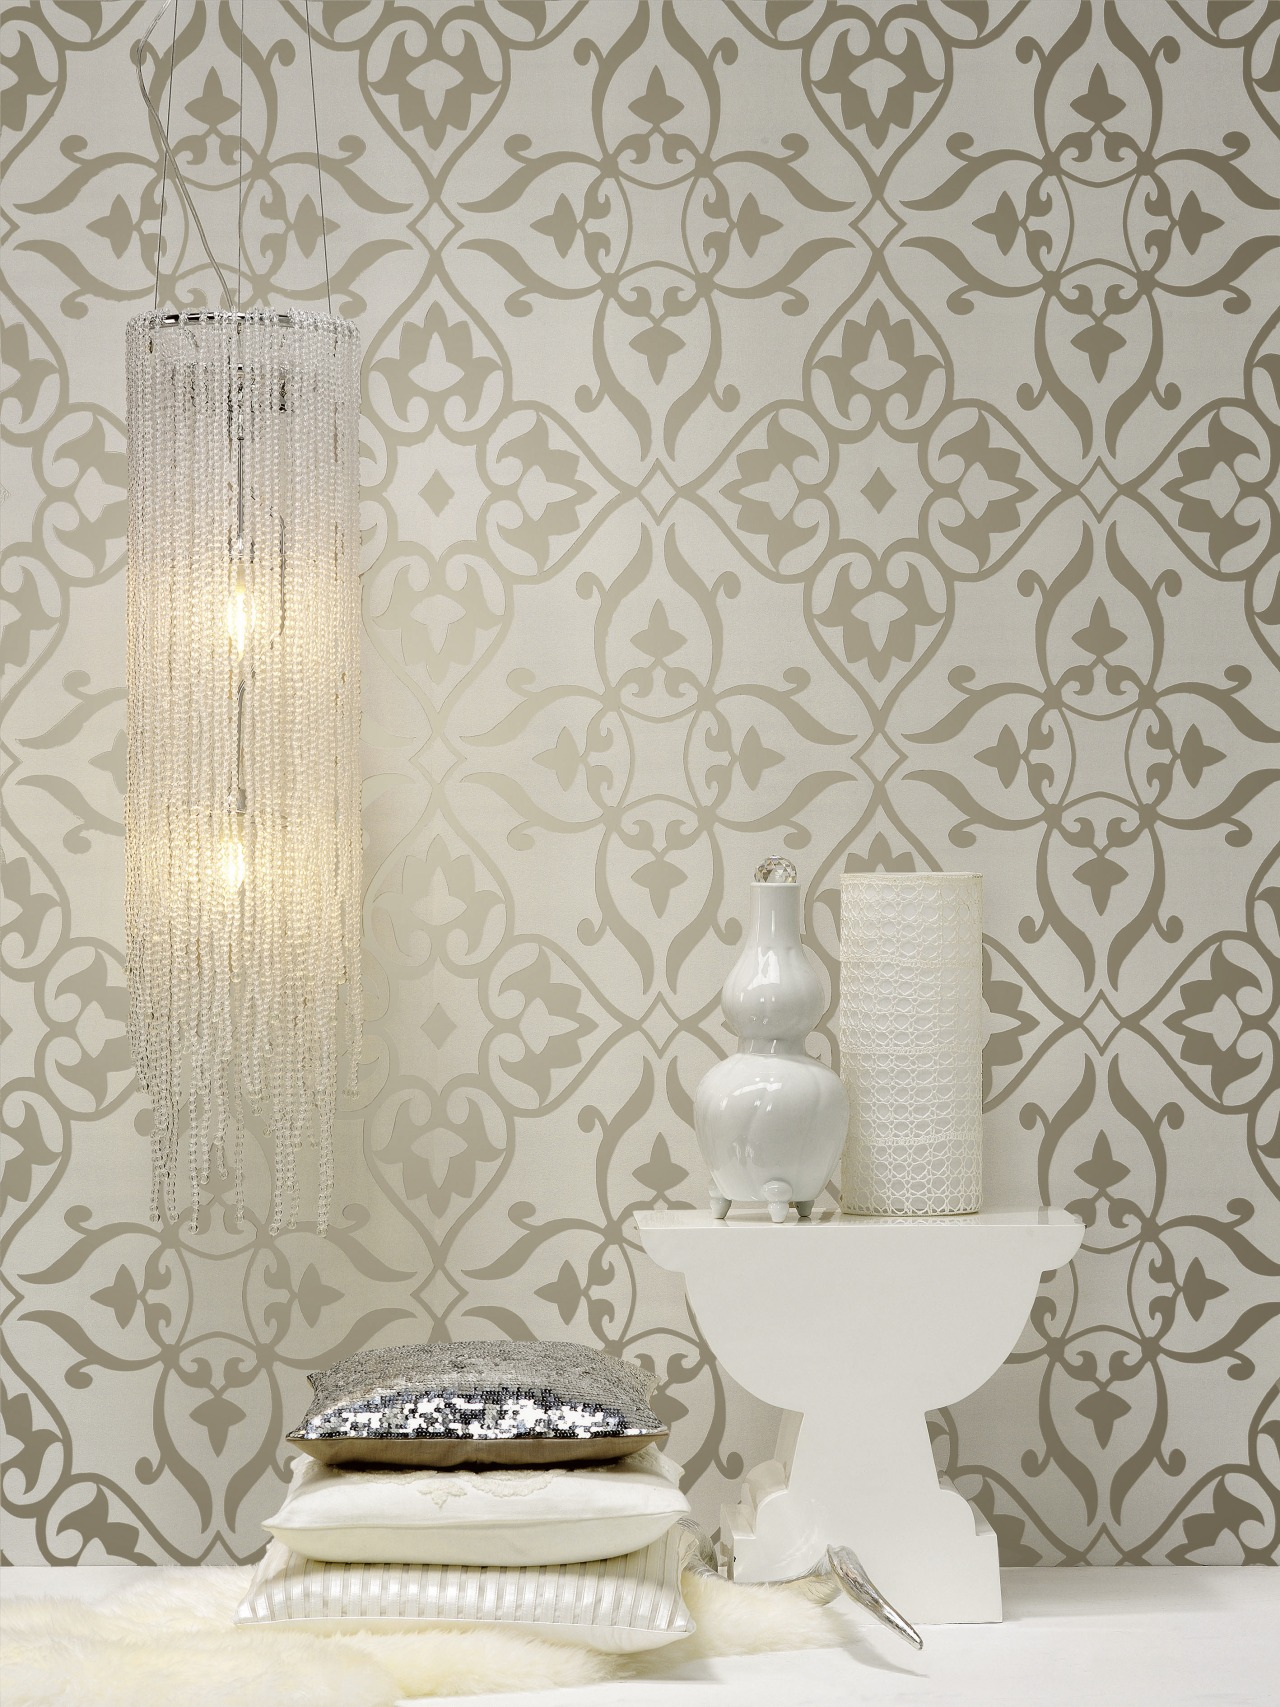 A view of some wallpaper from Vision Wallcoverings. interior design, wall, wallpaper, gray